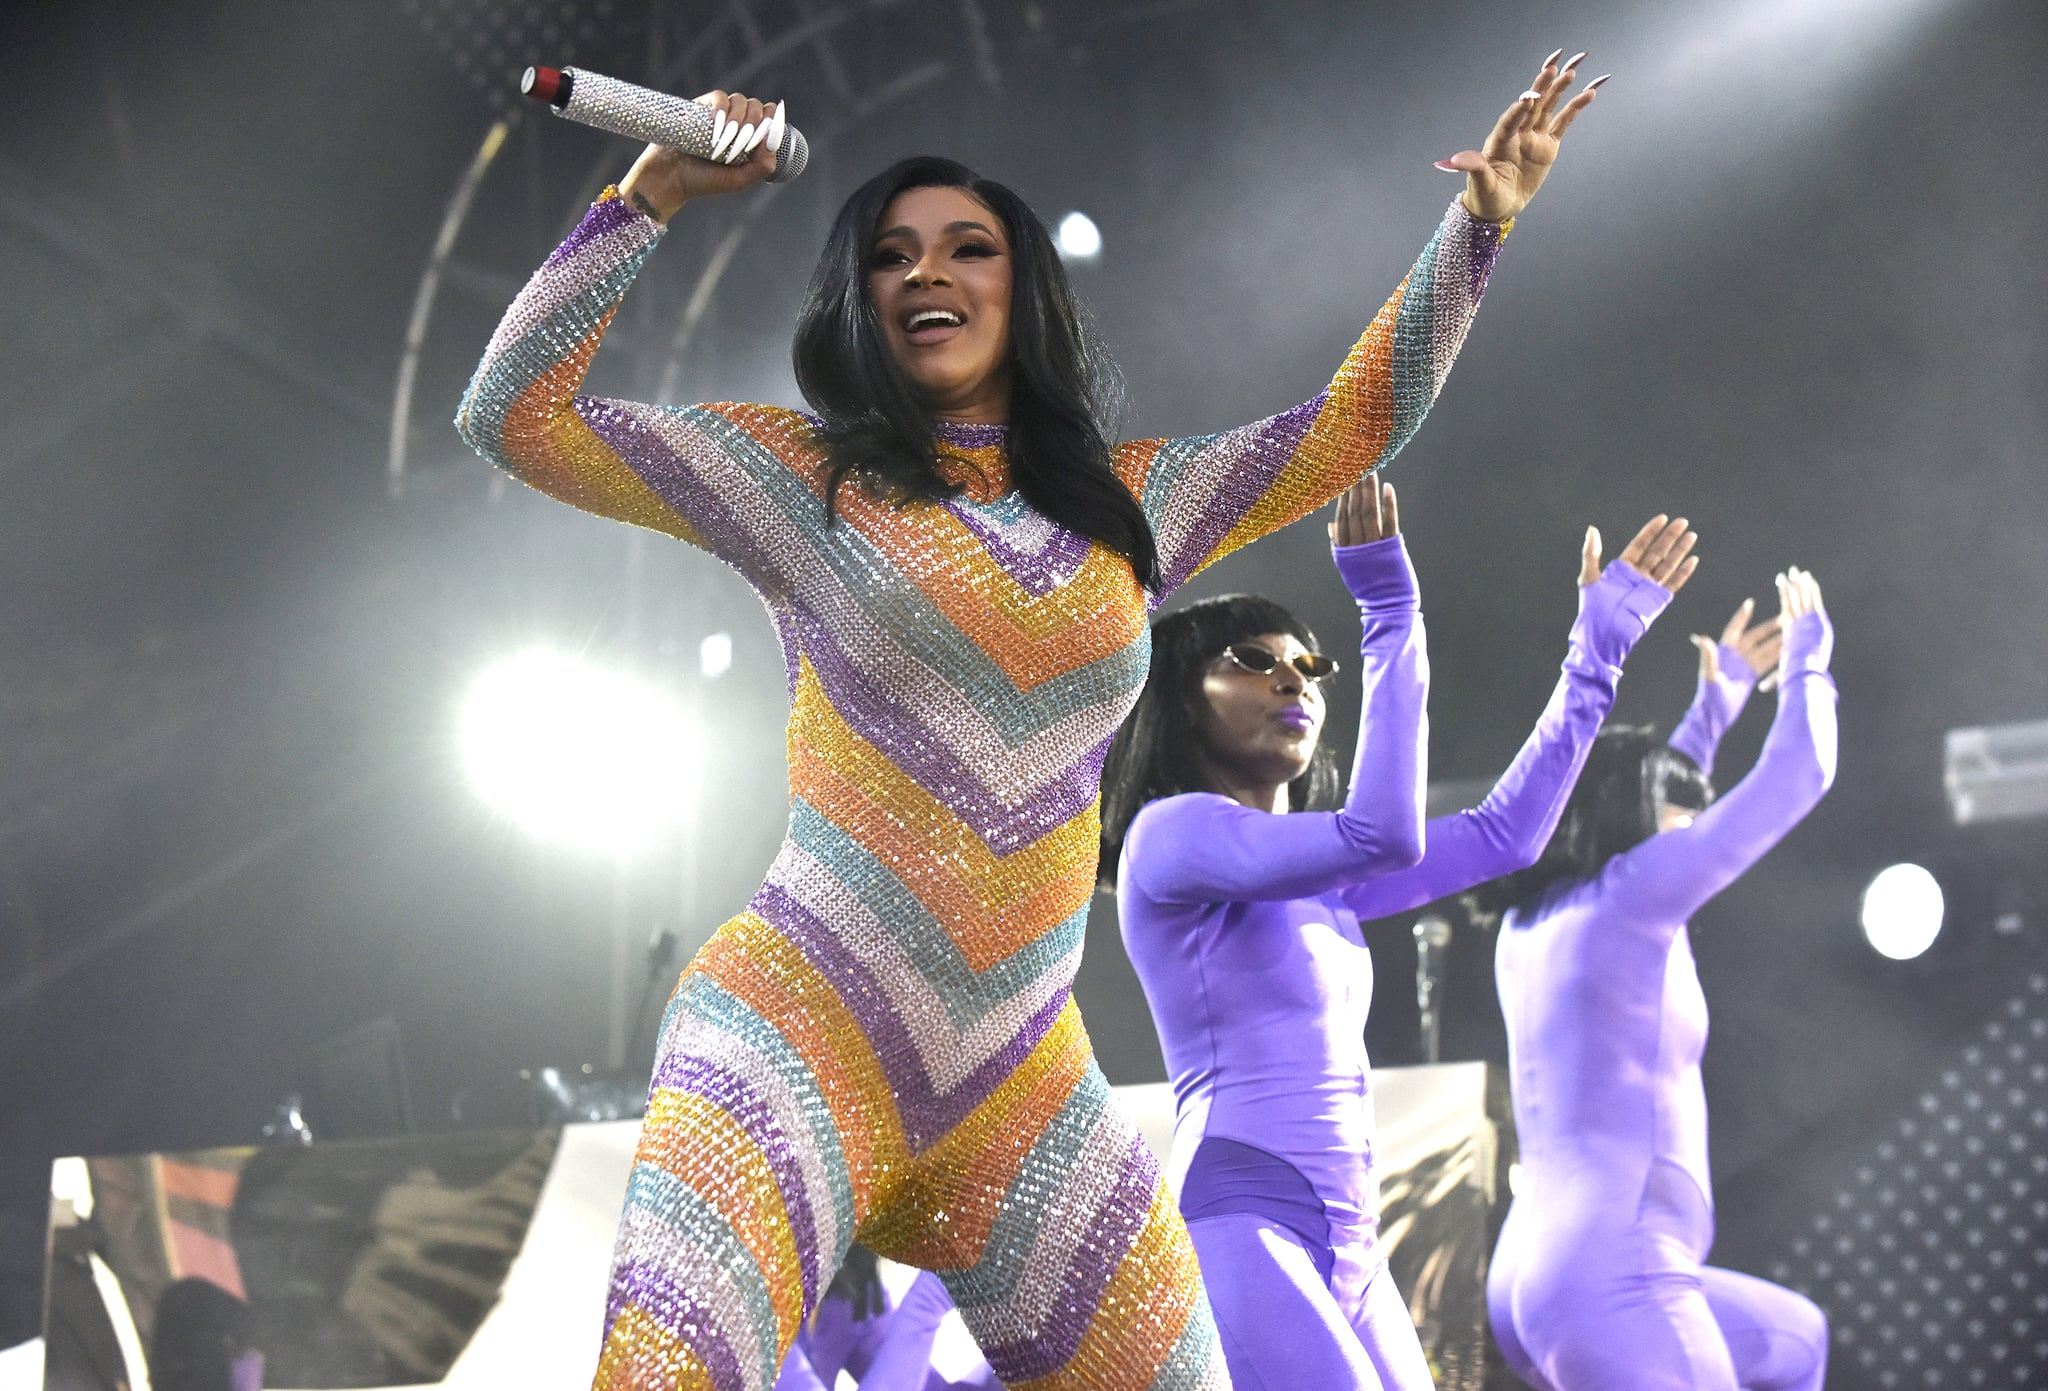 MANCHESTER, TENNESSEE - JUNE 16: Cardi B performs during the 2019 Bonnaroo Music & Arts Festival on June 16, 2019 in Manchester, Tennessee. (Photo by Tim Mosenfelder/Getty Images)